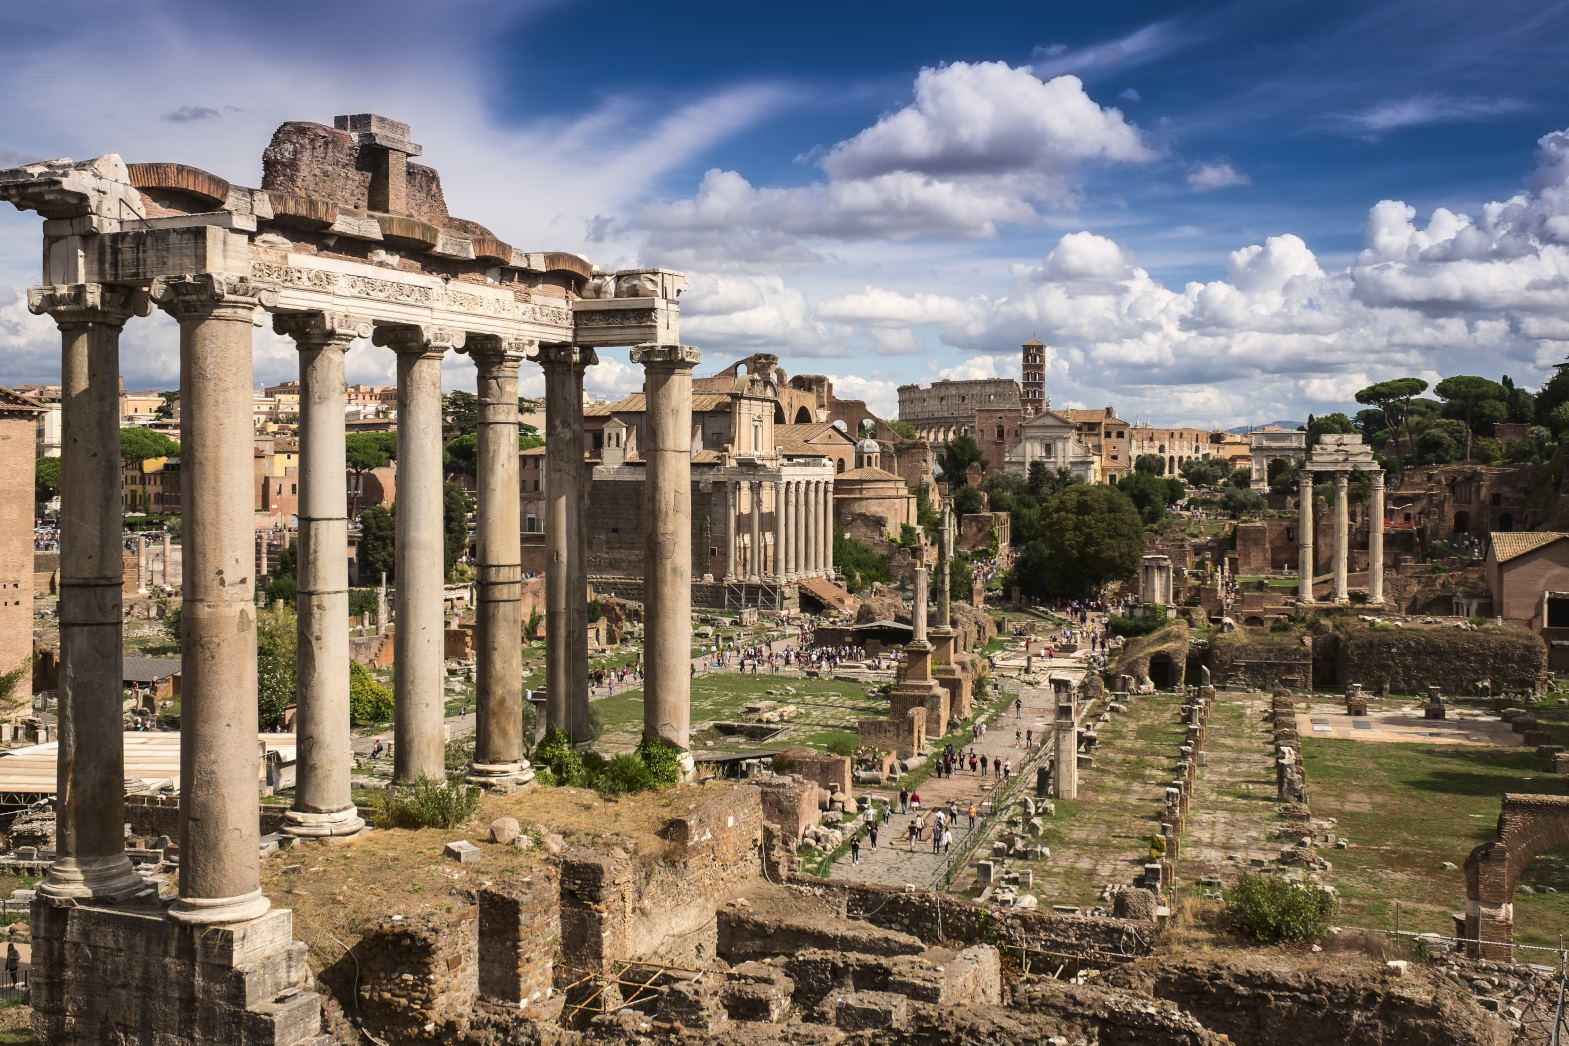 Panoramic view of the Roman Forum Foro Romano and Ruins of Septimius Severus Arch and Saturn Temple in Rome, Italy